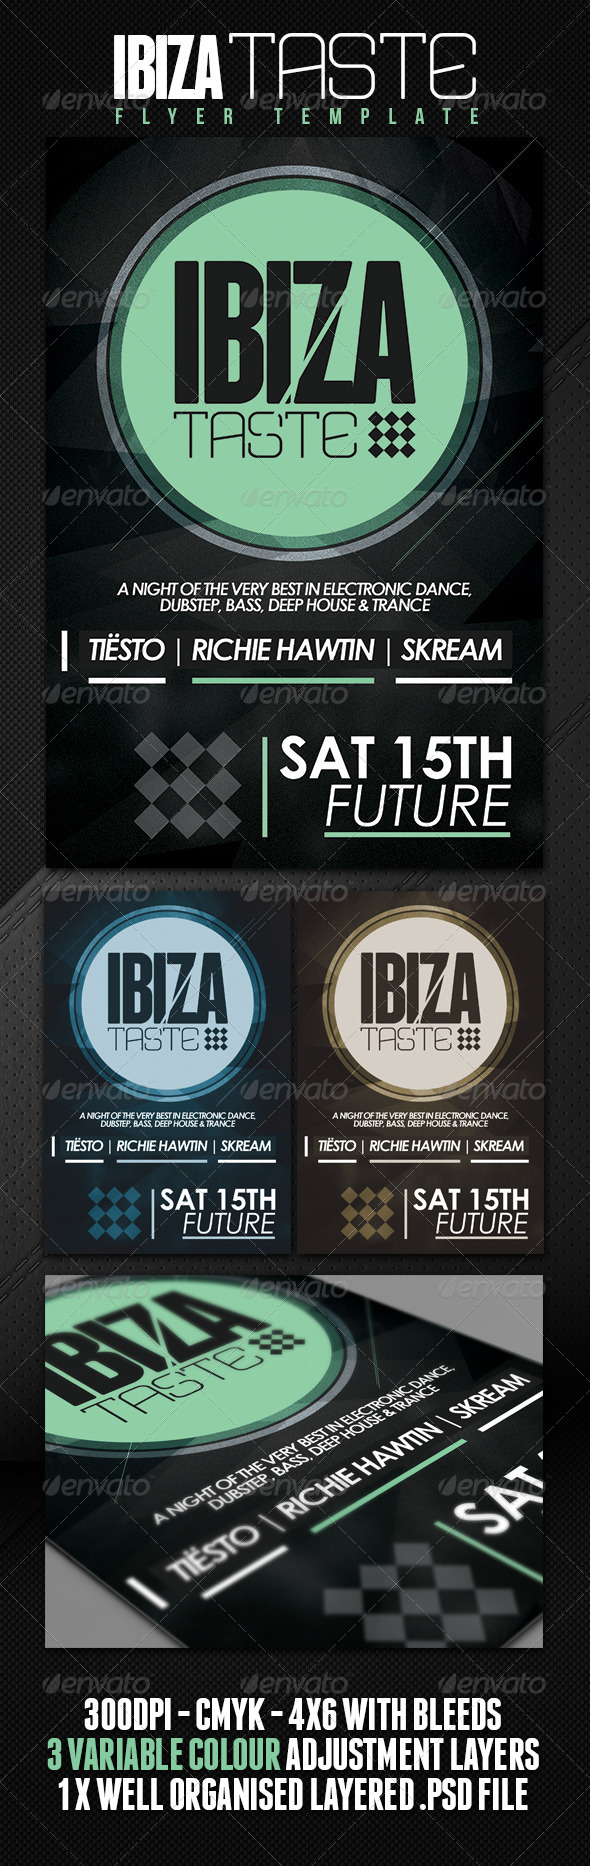 Ibiza Taste Club/Party Flyer - Clubs & Parties Events